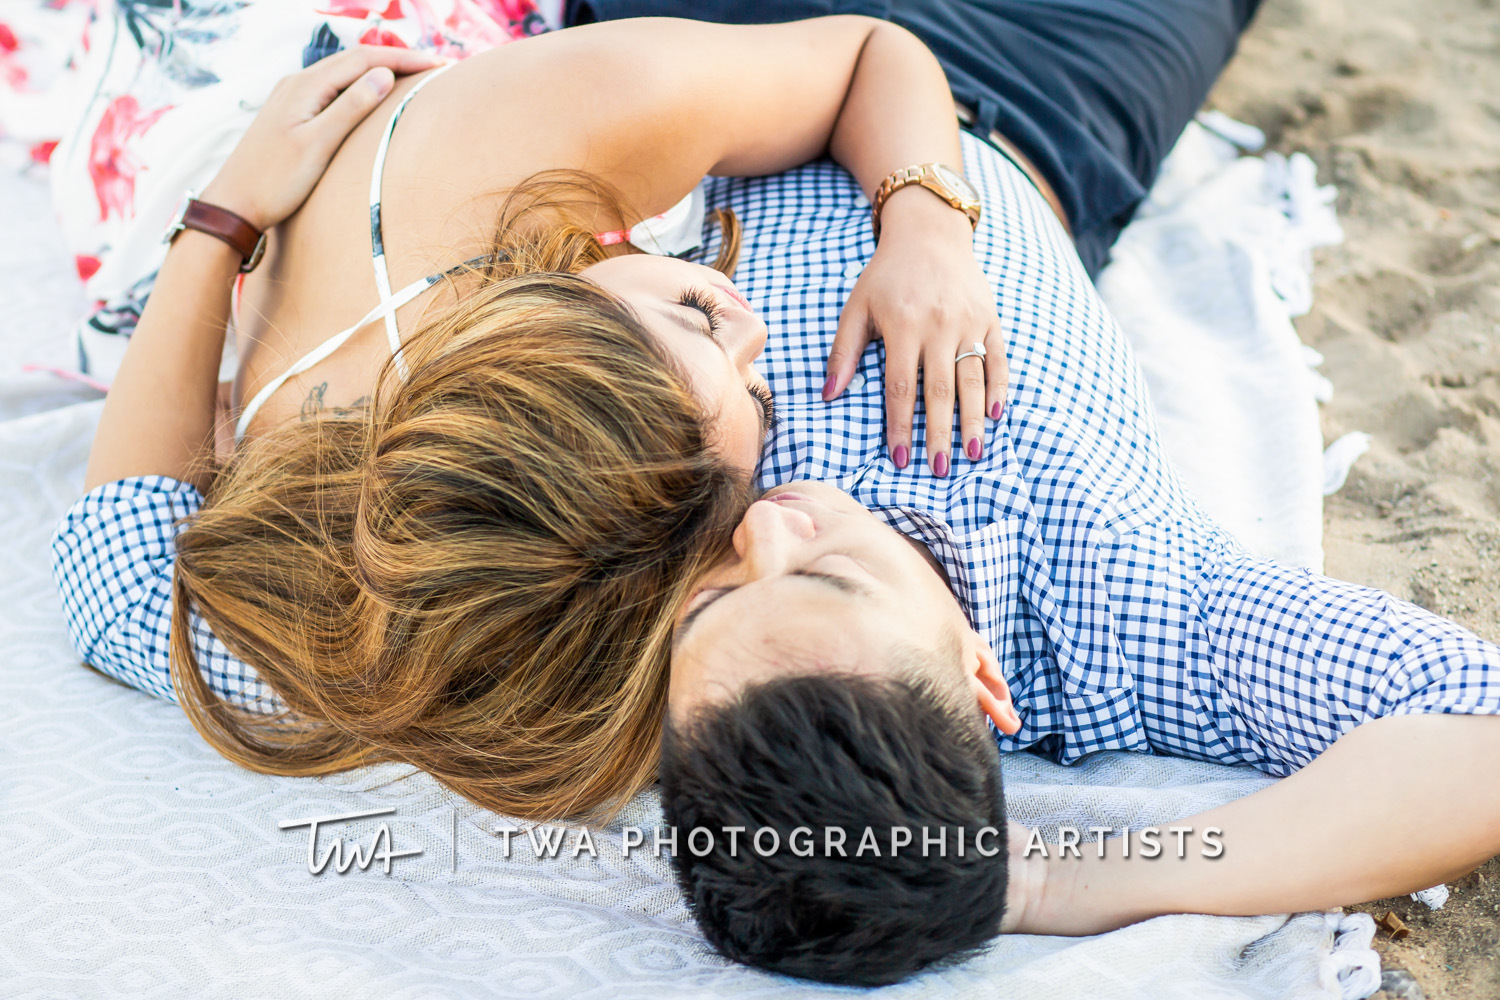 Chicago-Wedding-Photographer-TWA-Photographic-Artists-North-Ave-Beach_Butthajit_Dinh_MJ-078